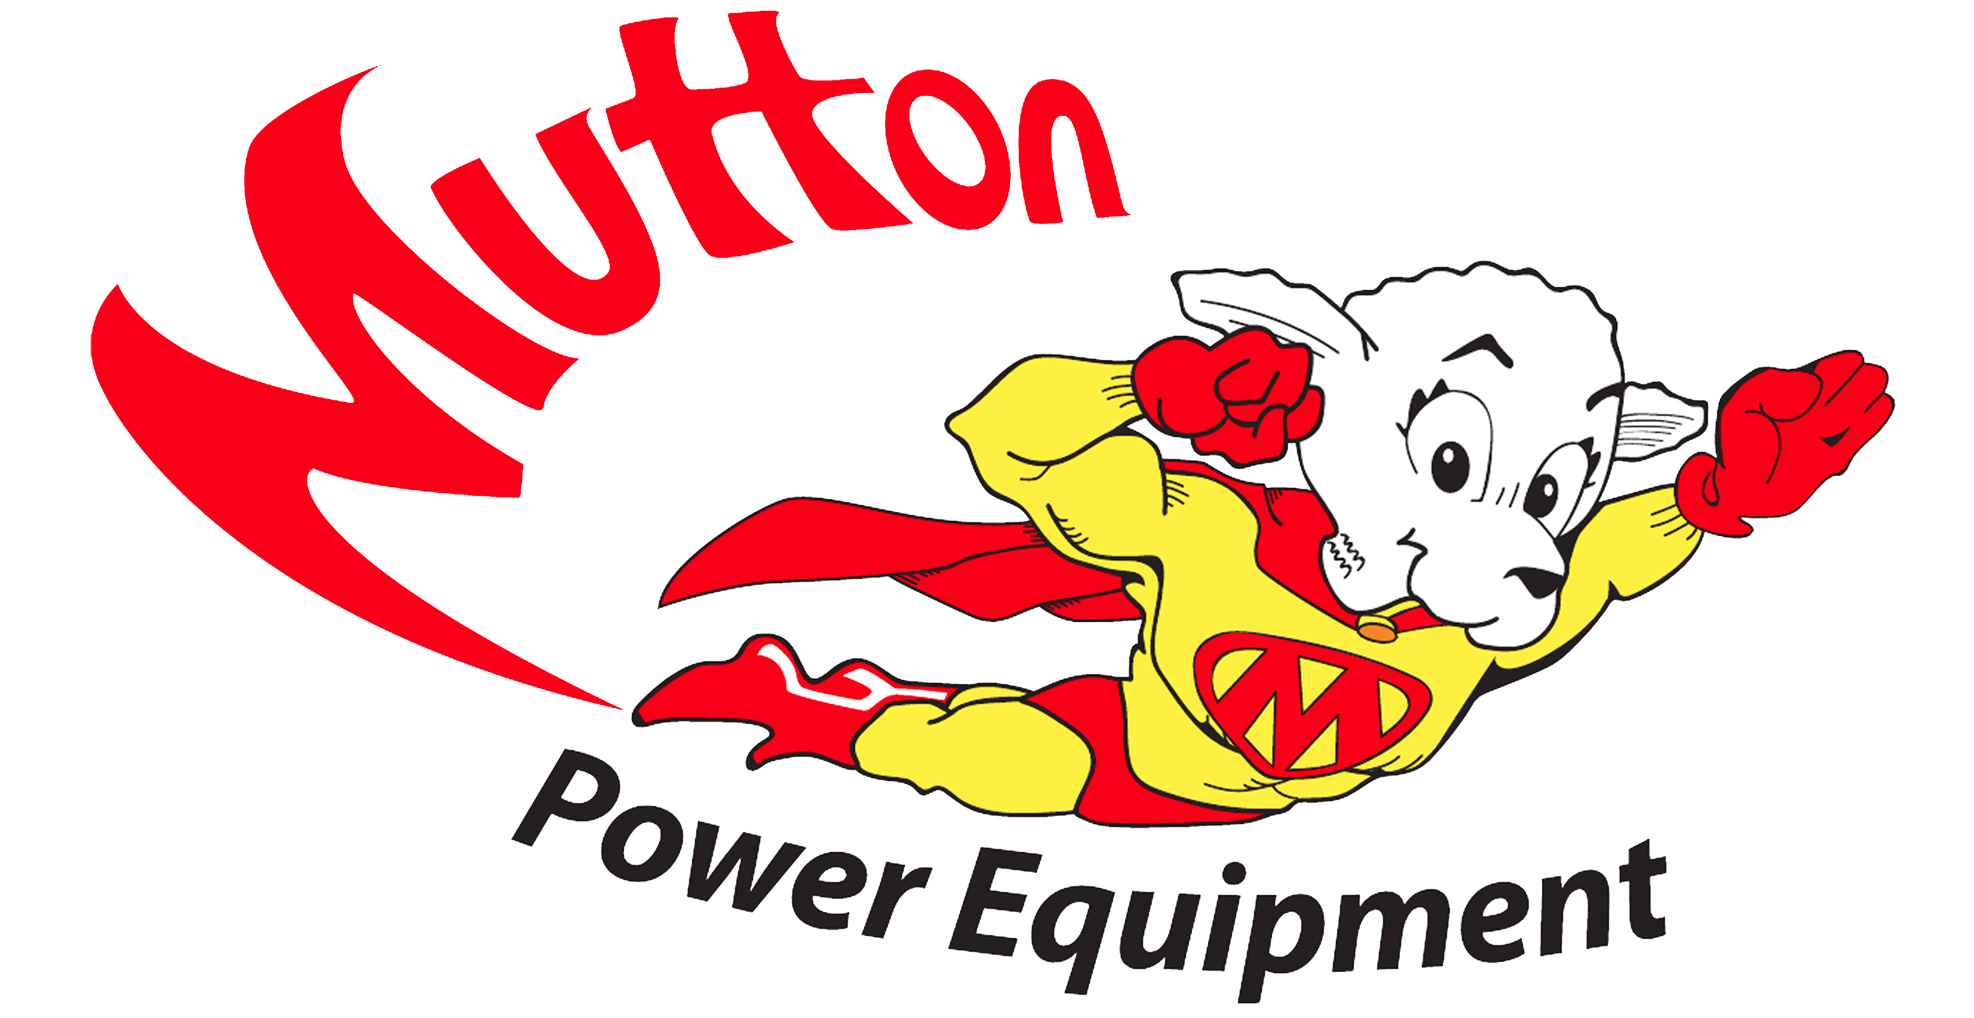 Mutton Power